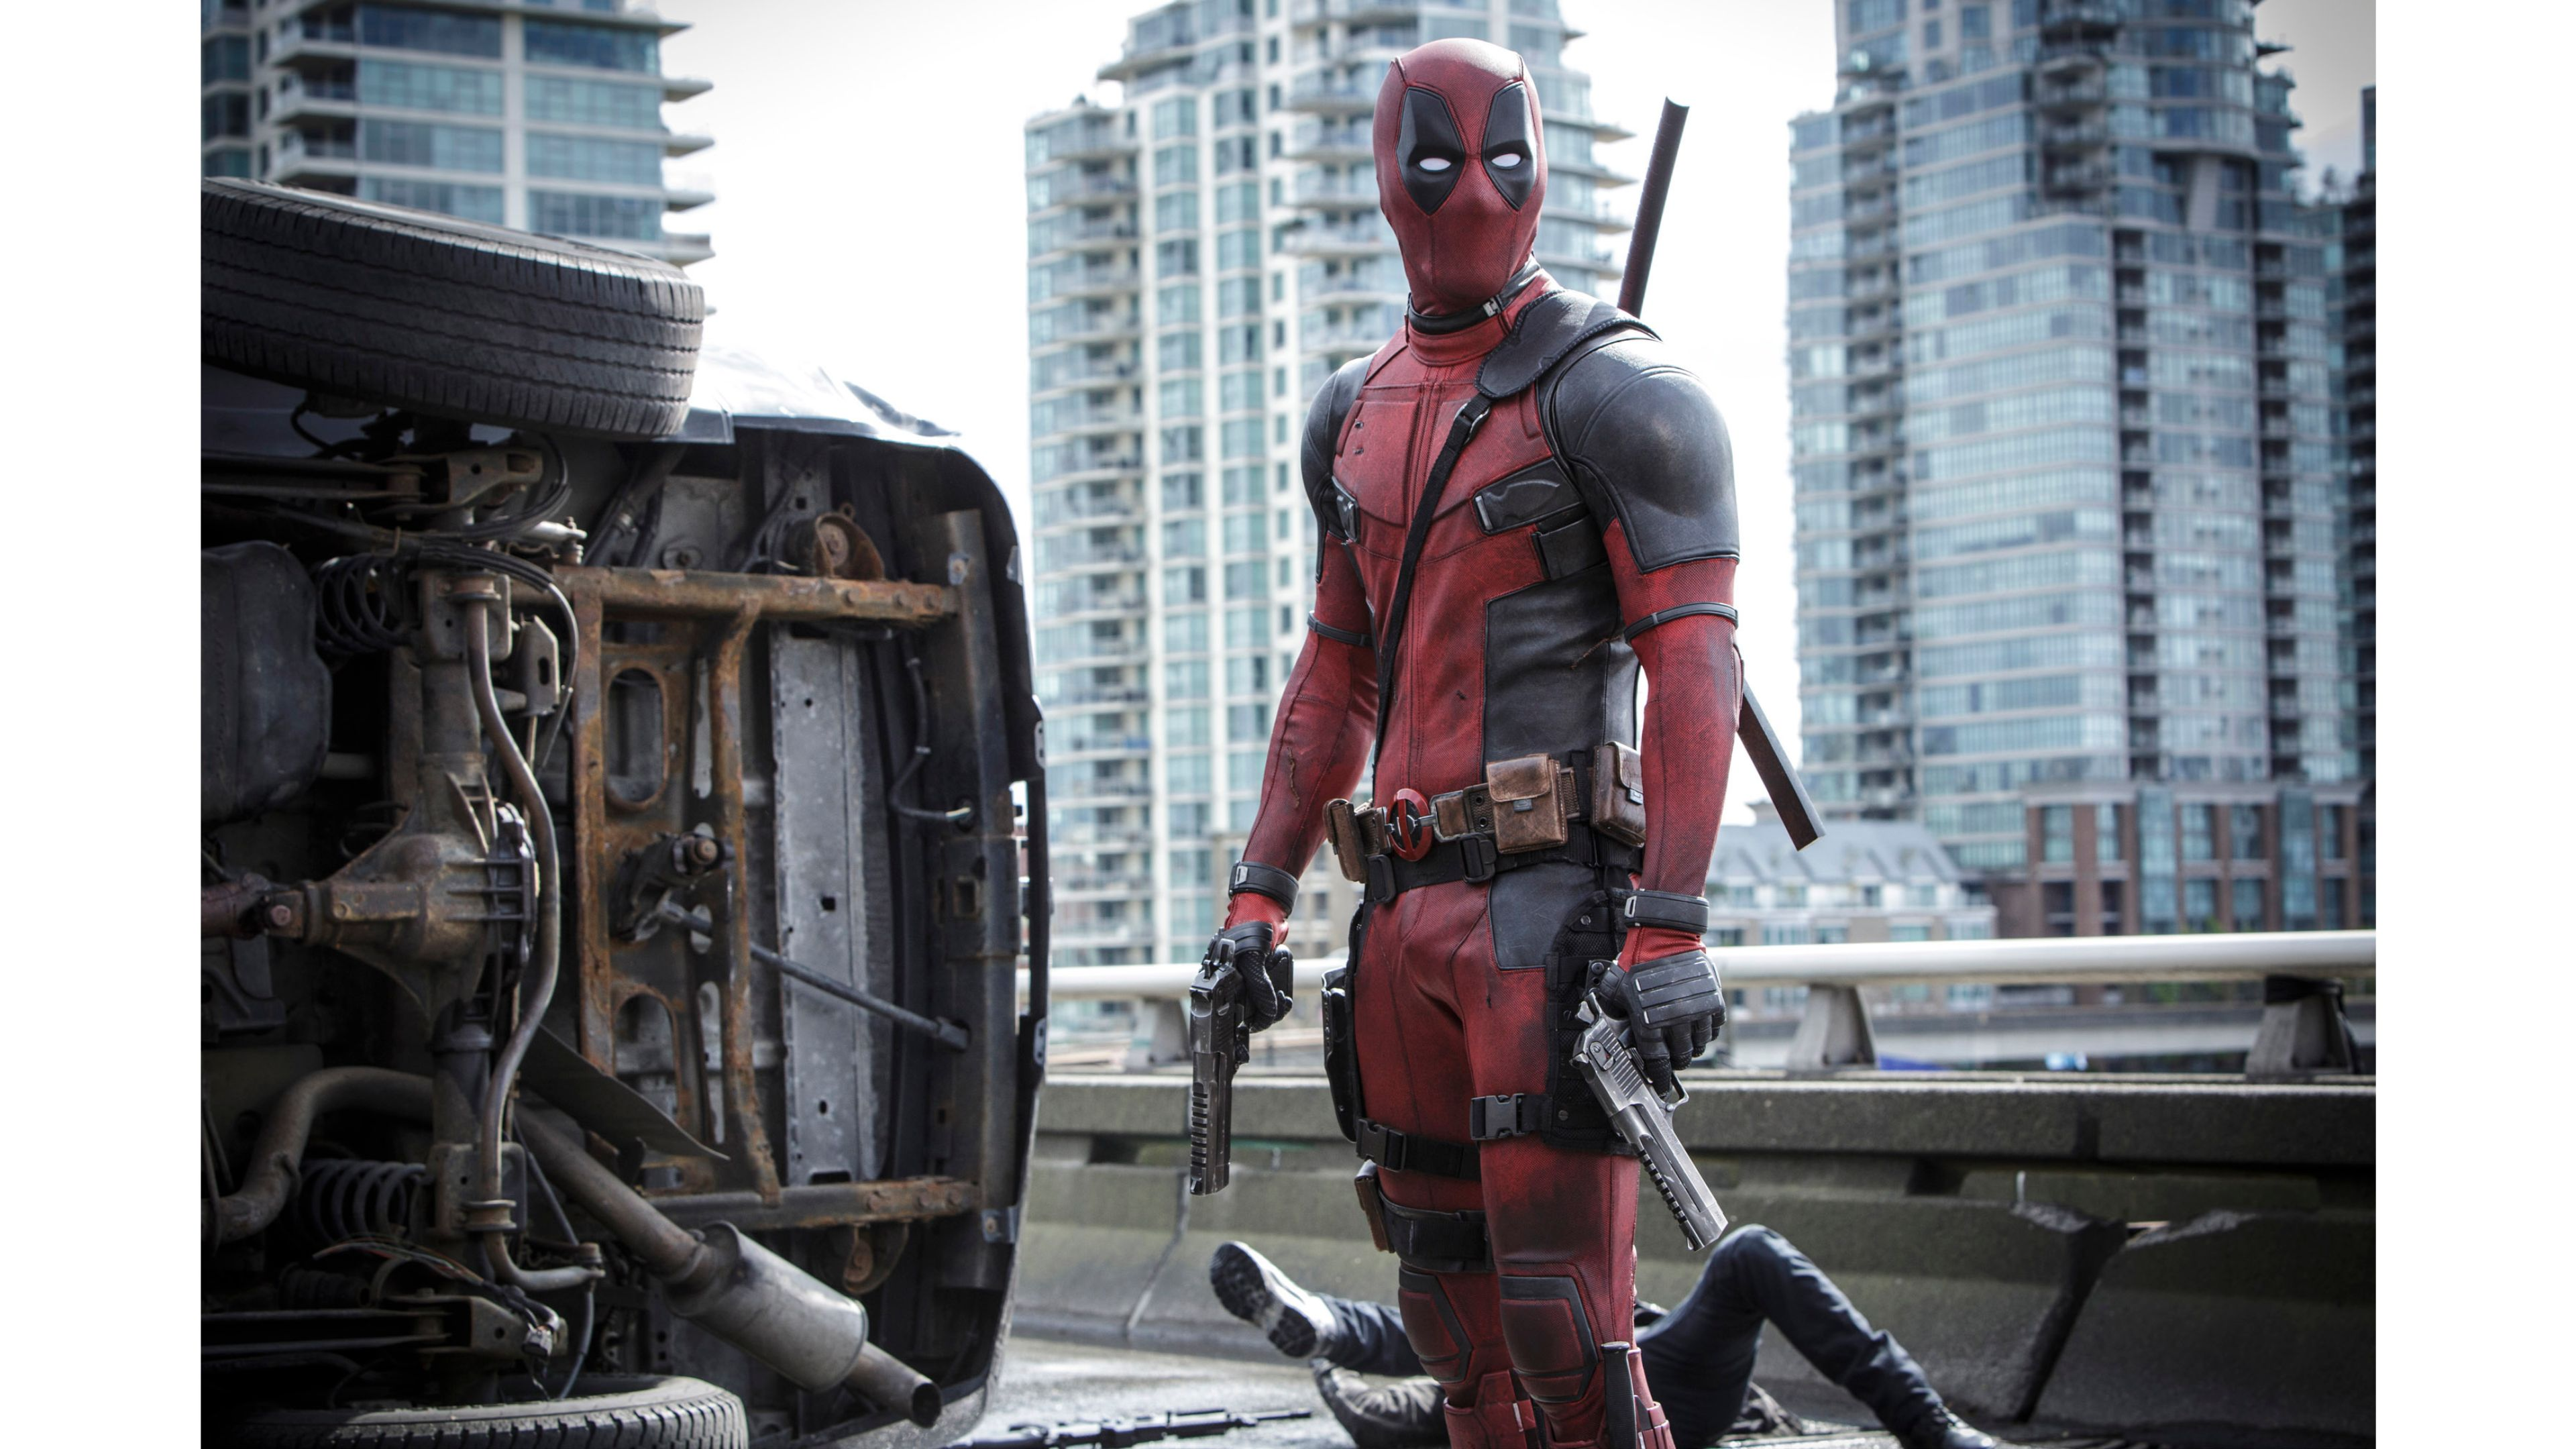 Deadpool Wallpapers, Photos And Desktop Backgrounds Up To